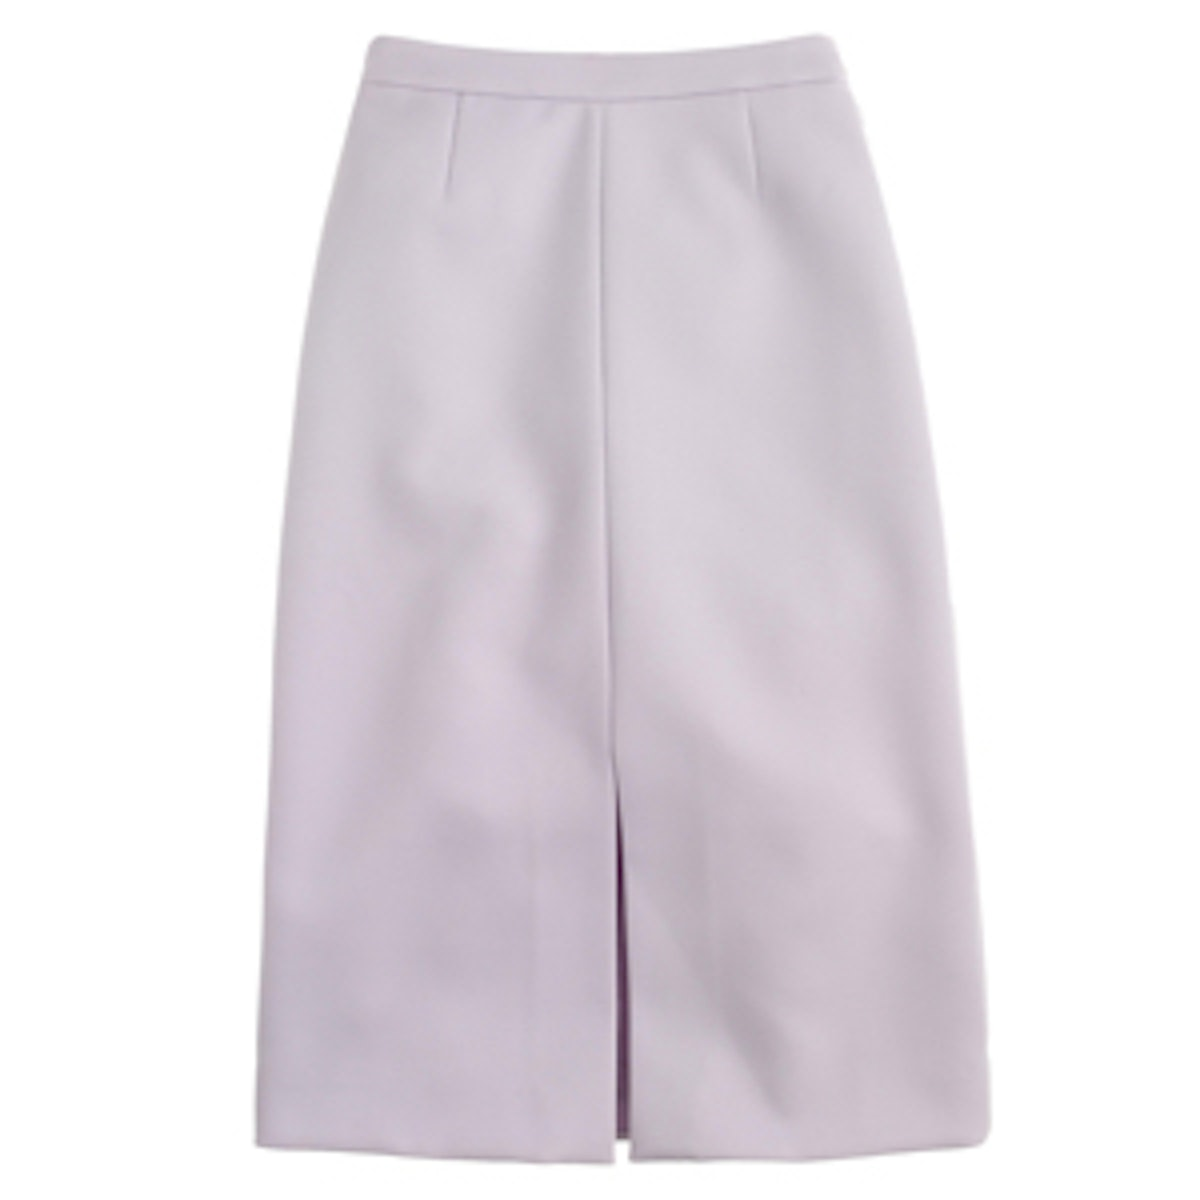 A-Line Skirt In Bonded Twill